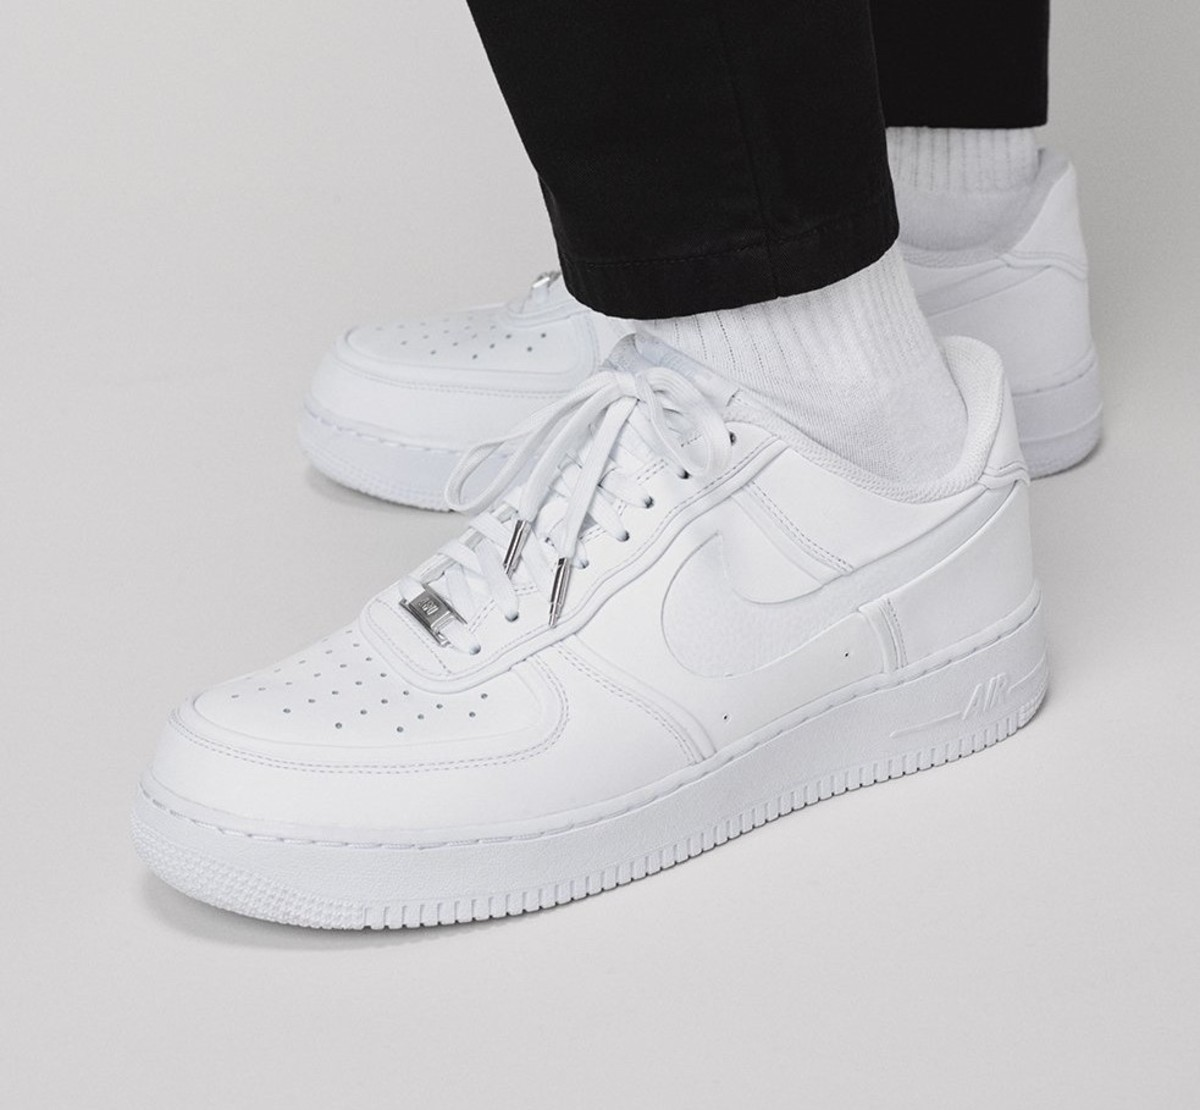 6d43ba255730e Get the Nike x John Elliott Air Force 1s While You Can - Airows